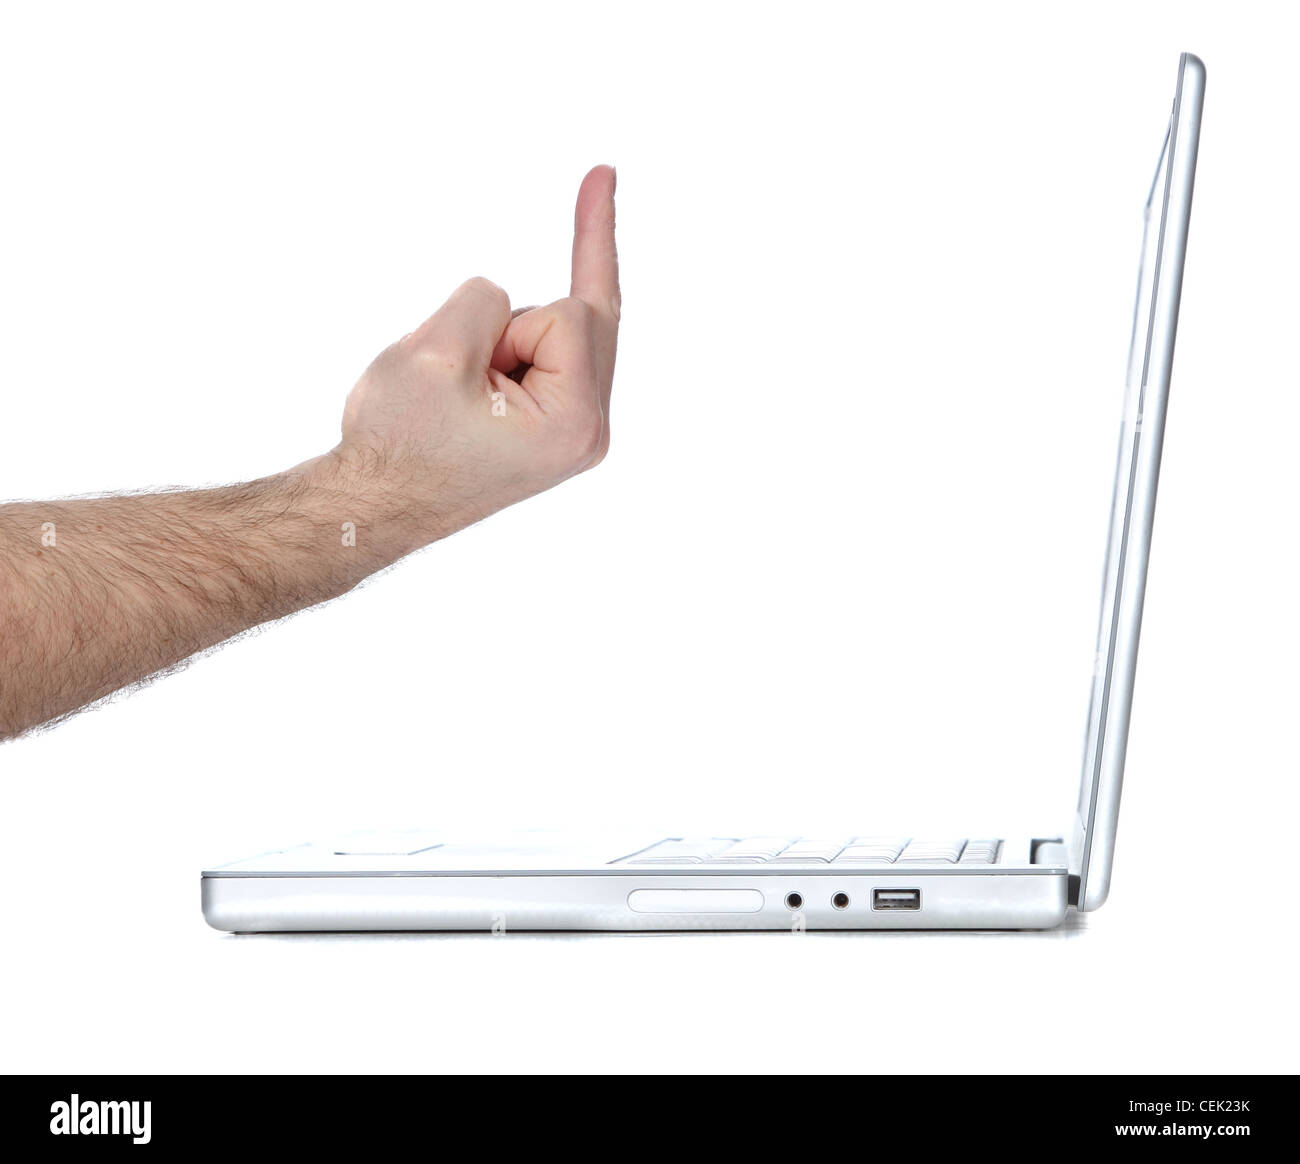 Flipping a Laptop computer the bird - Stock Image